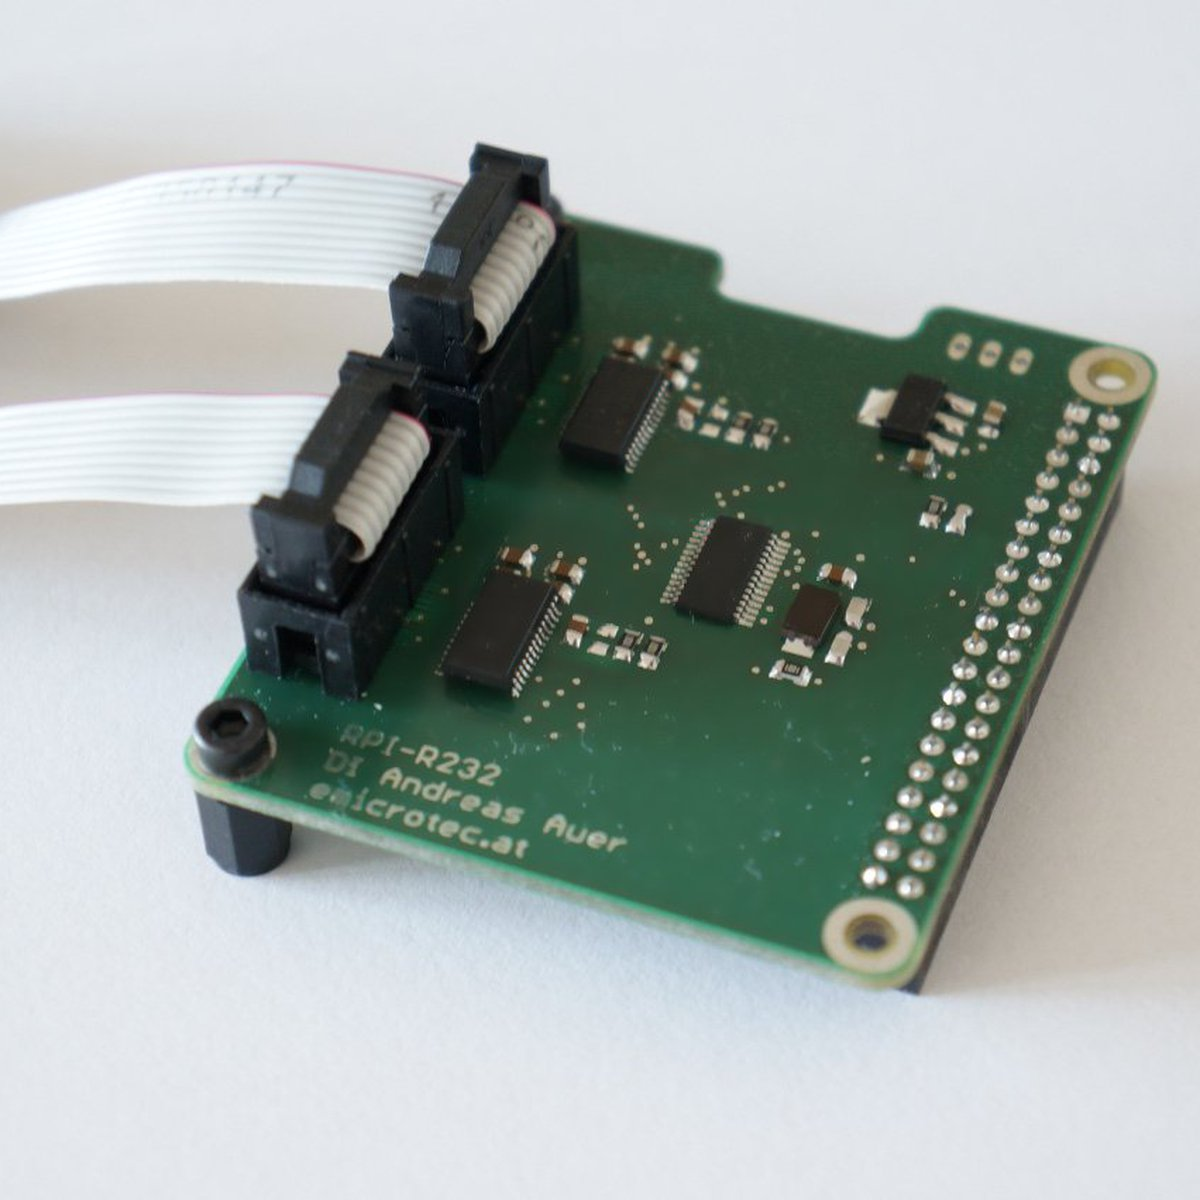 Raspberry Pi - Dual Serial Port Extension from Andreas Auer on Tindie